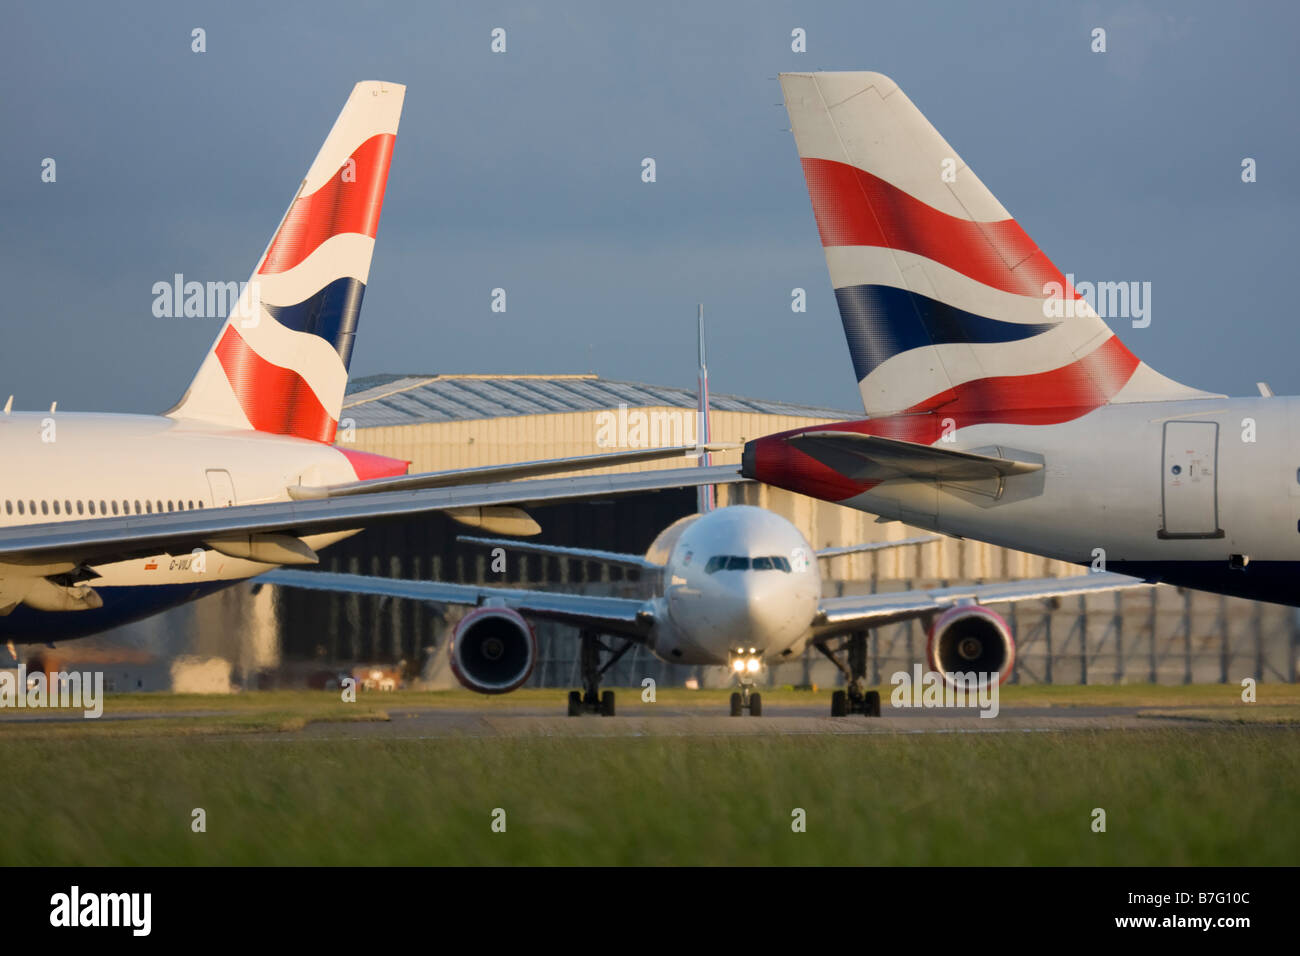 Tails of British Airways planes at London Heathrow airport. - Stock Image